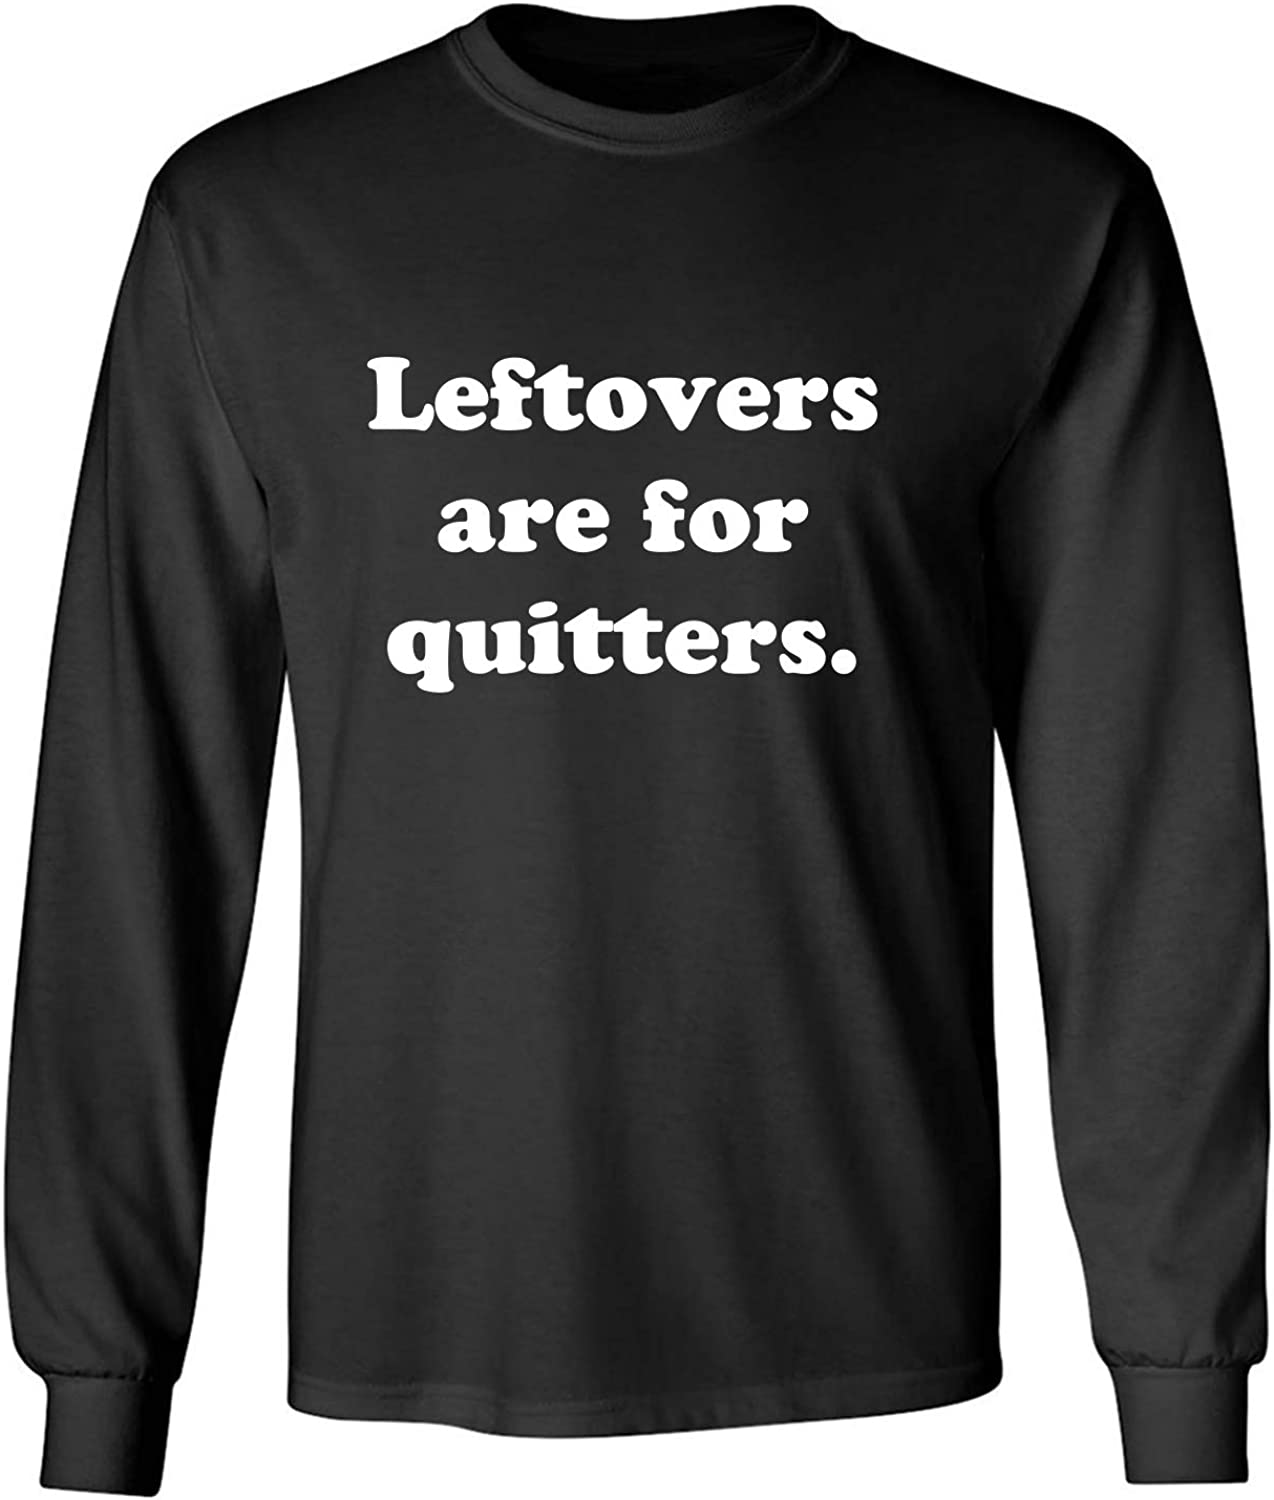 Leftovers are for Quitters Adult Long Sleeve T-Shirt in Black - XXXX-Large